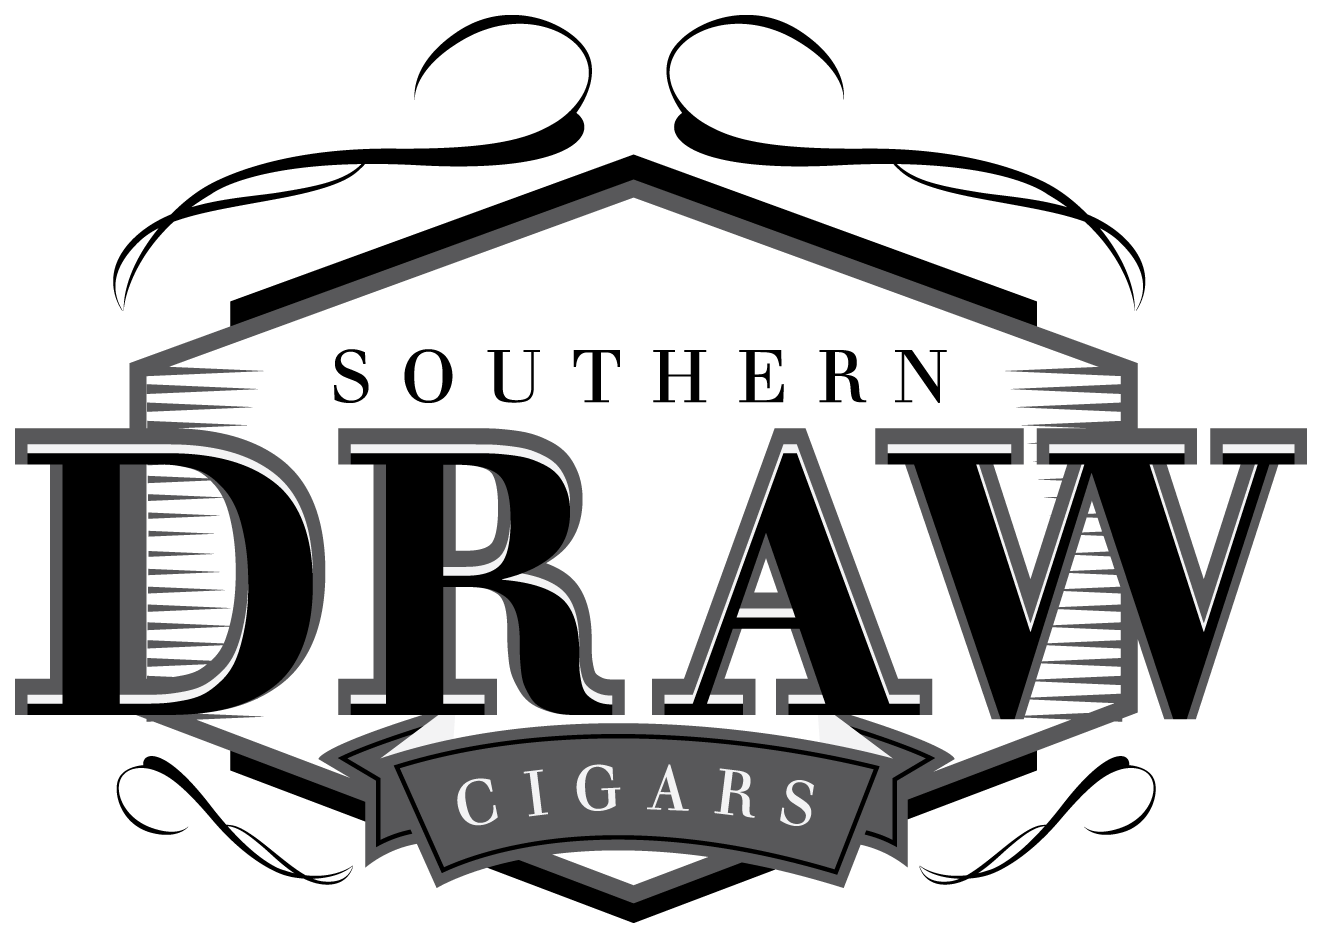 Cigar News: Southern Draw Cigars Issues Statement on FDA Regulations